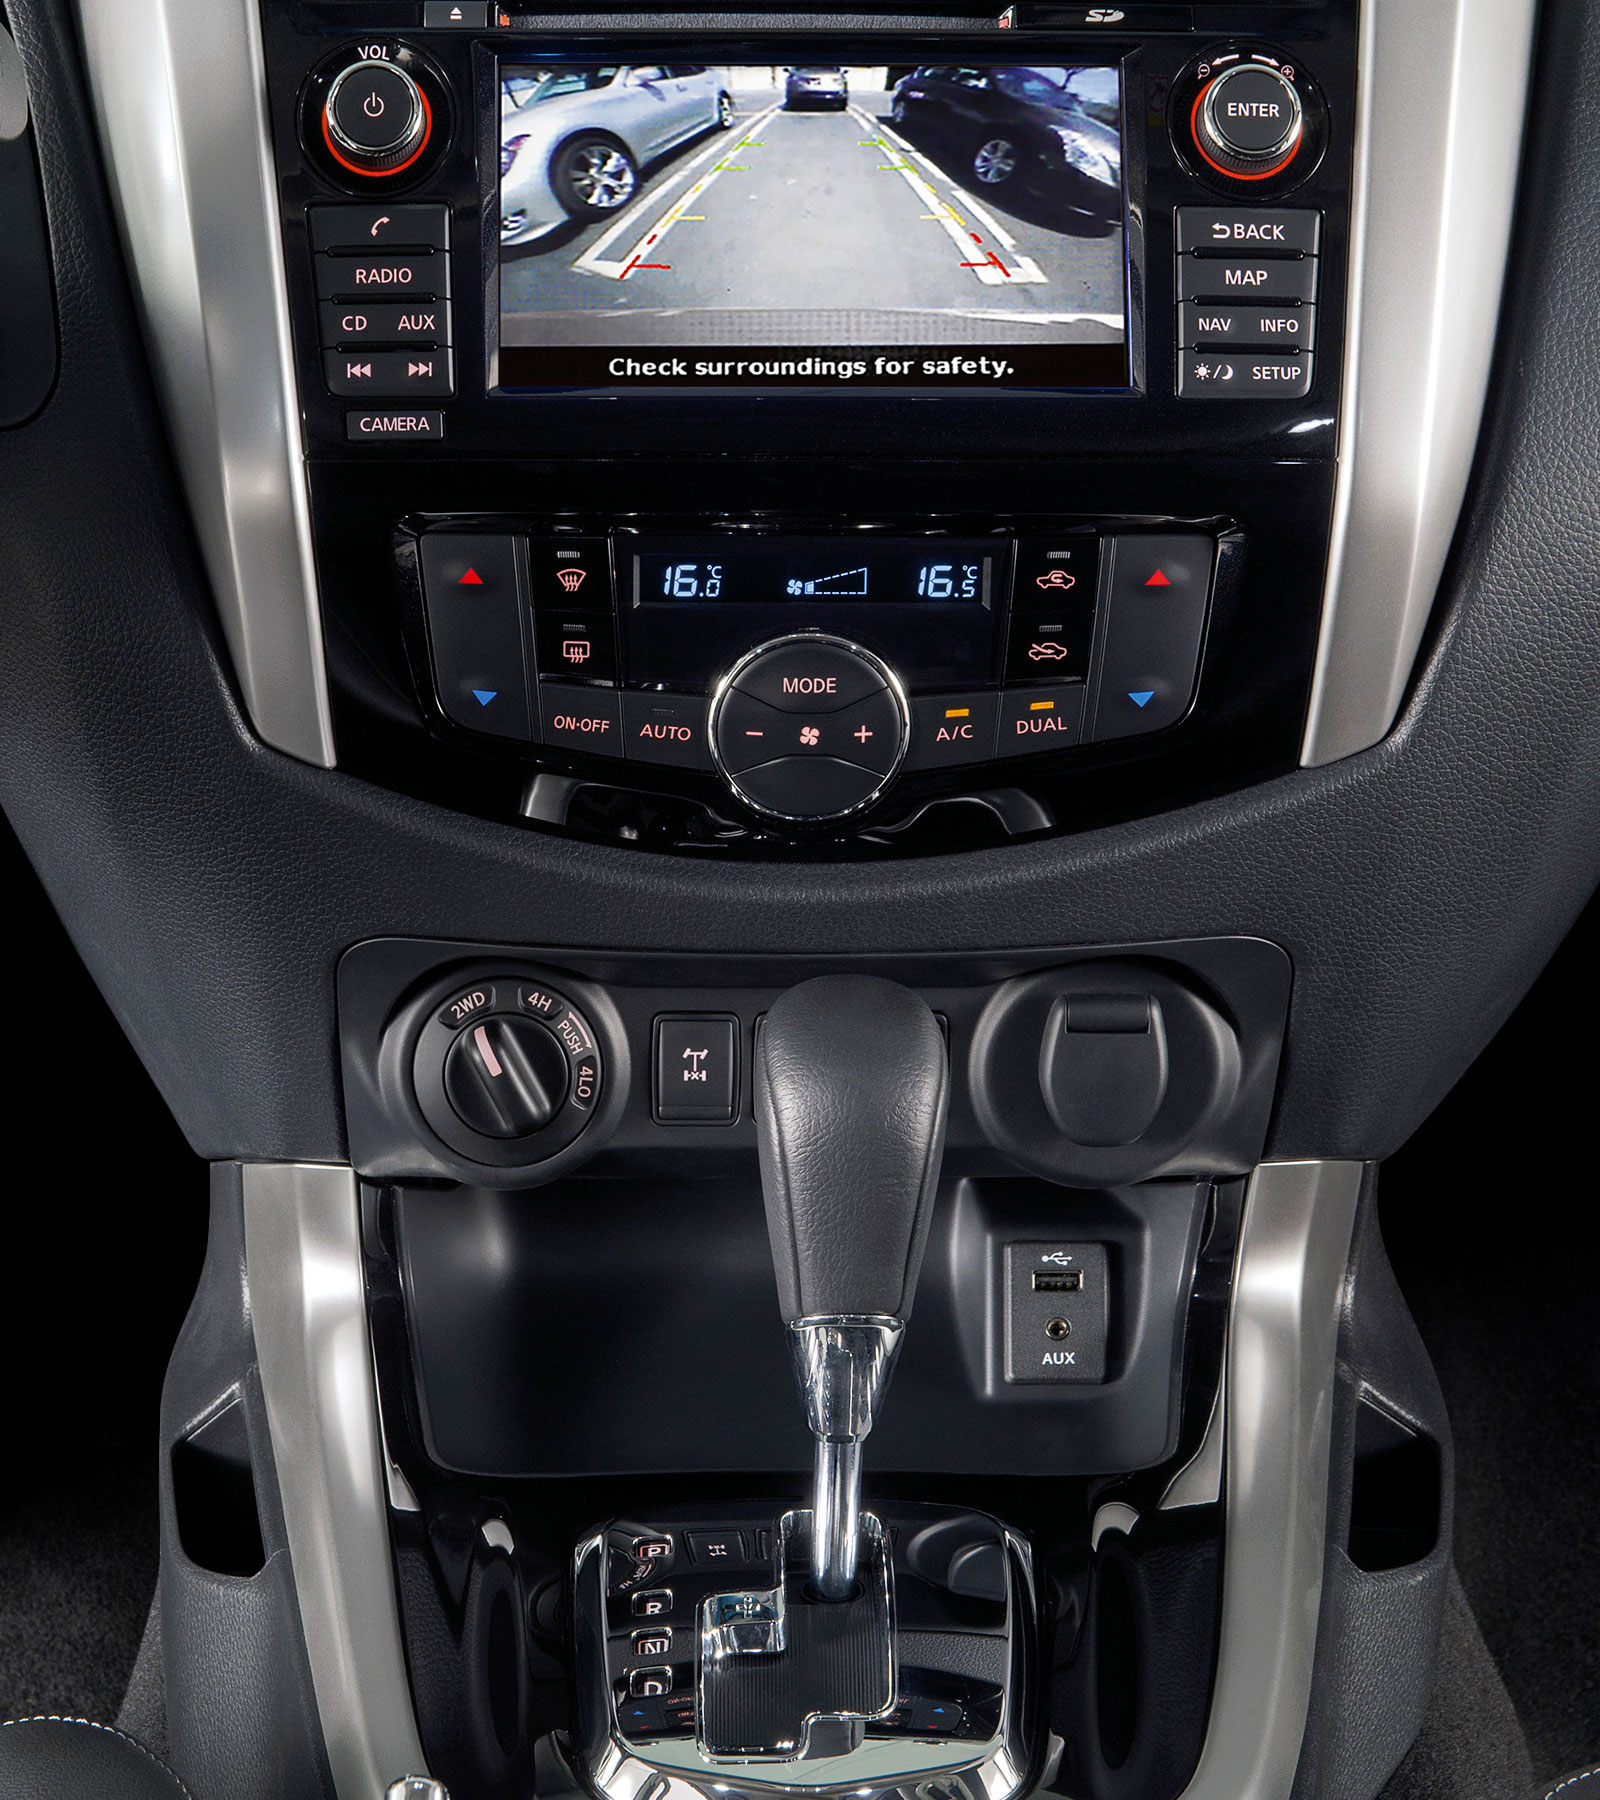 New Nissan Navara Off-Roader at32 pick-up around view monitor screen